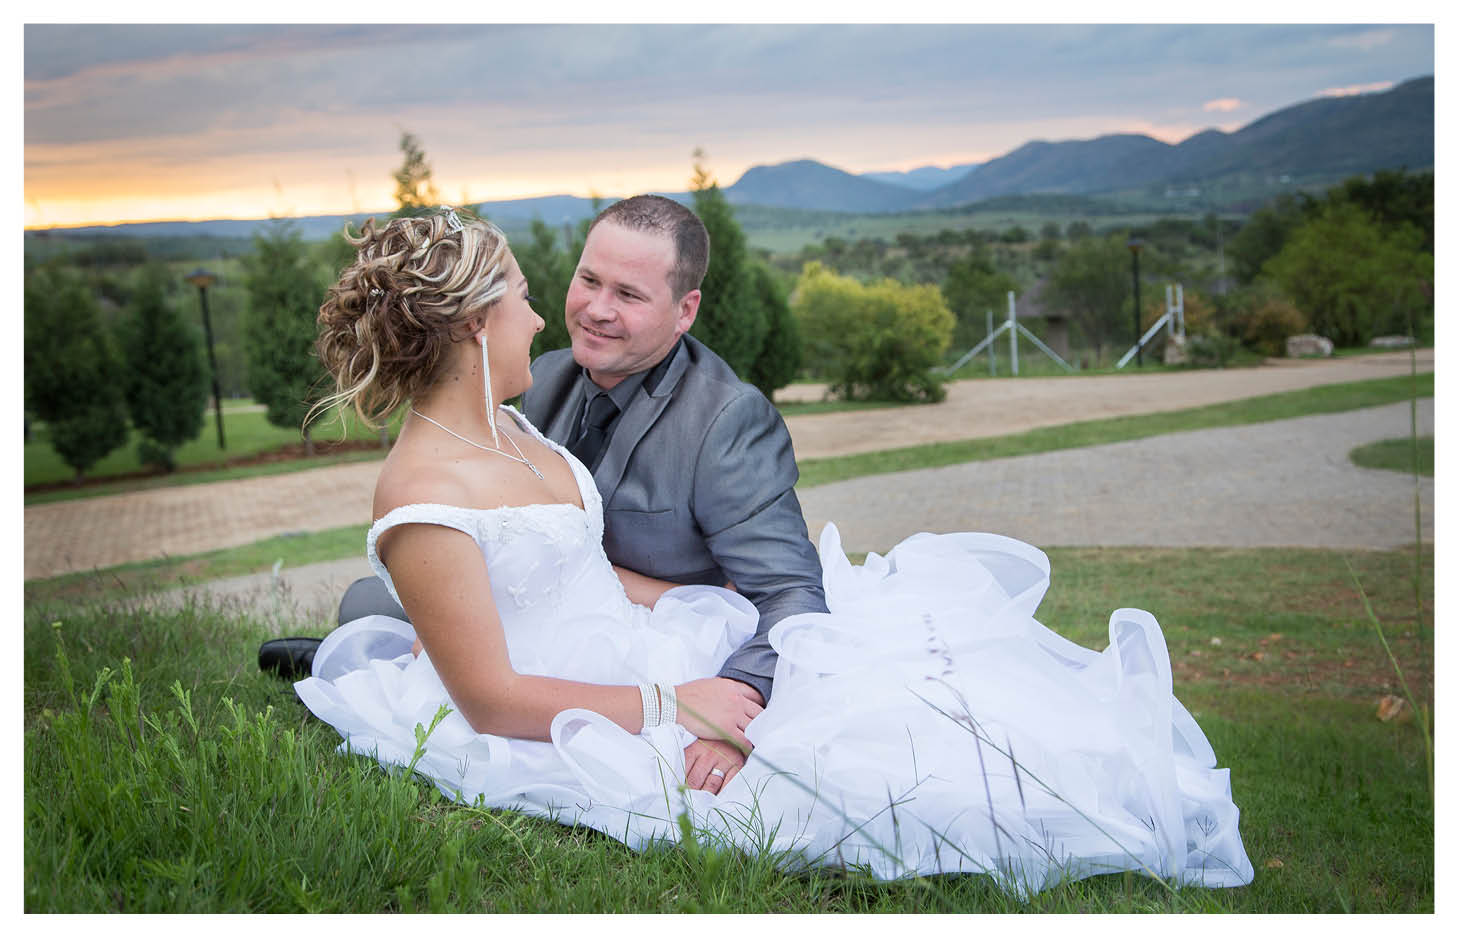 bride and groom with beautiful sunset and mountain background at La WiiDA Lodge